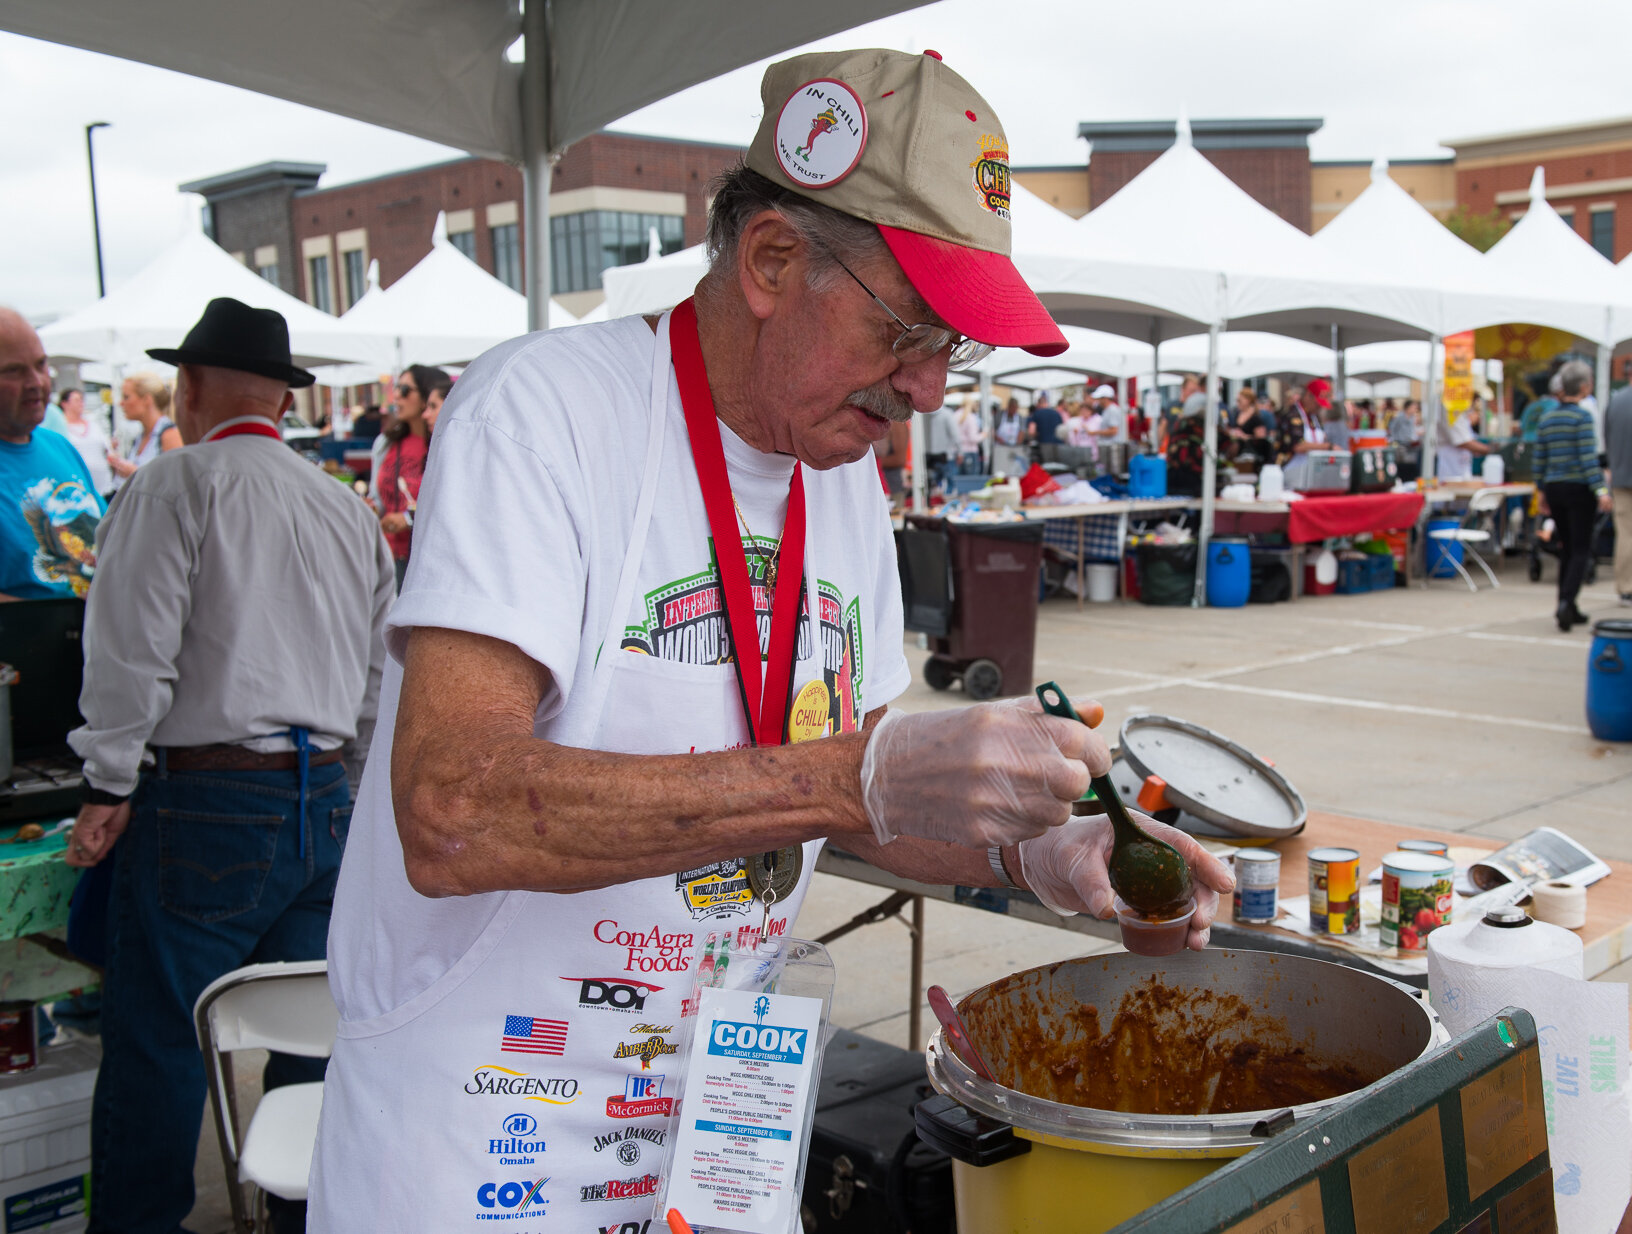 Contestants compete during the World Champion Chili Cook-off in Ankeny. Photo credit: Joseph L. Murphy/Iowa Soybean Association